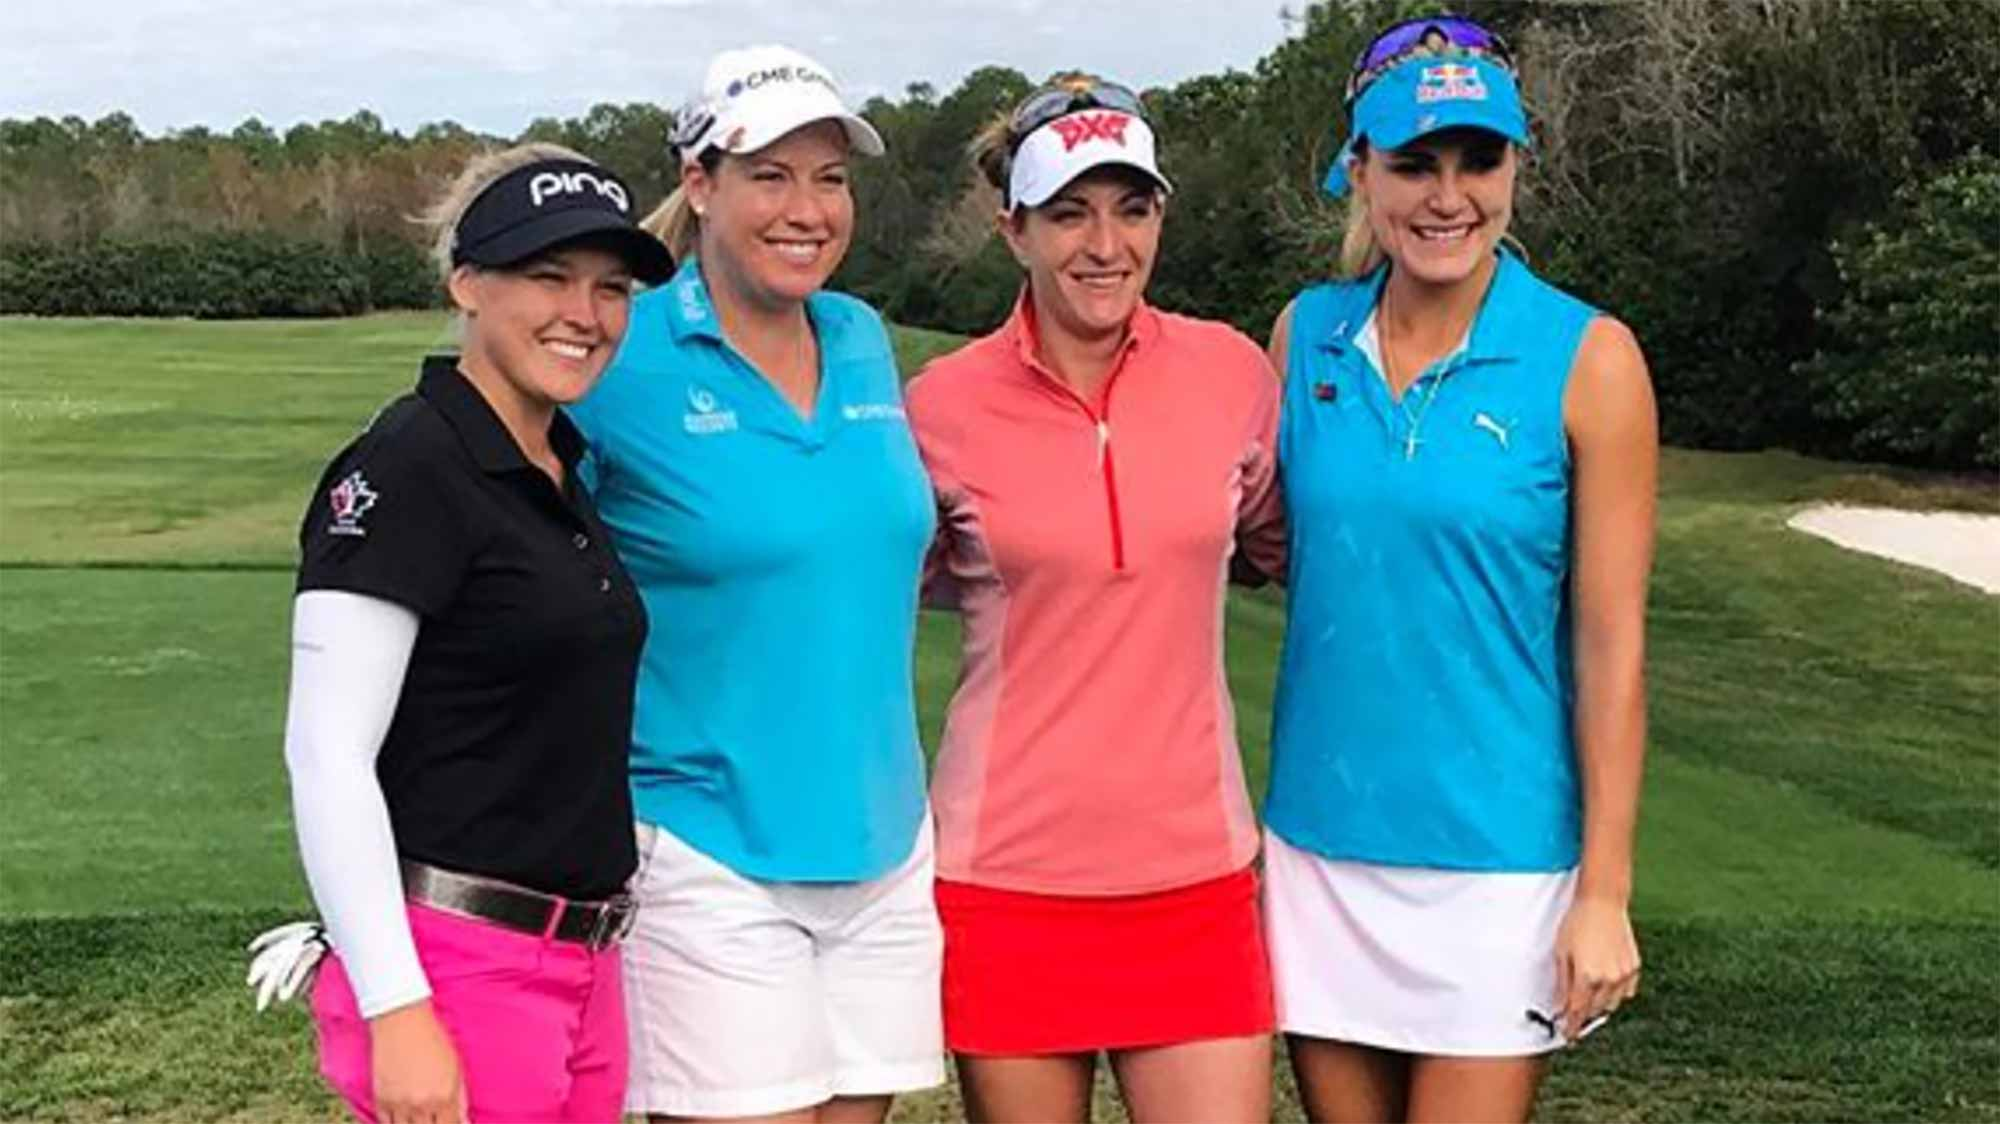 Four LPGA Major Champs Wrap Up Weekend at Diamond Resorts Invitational